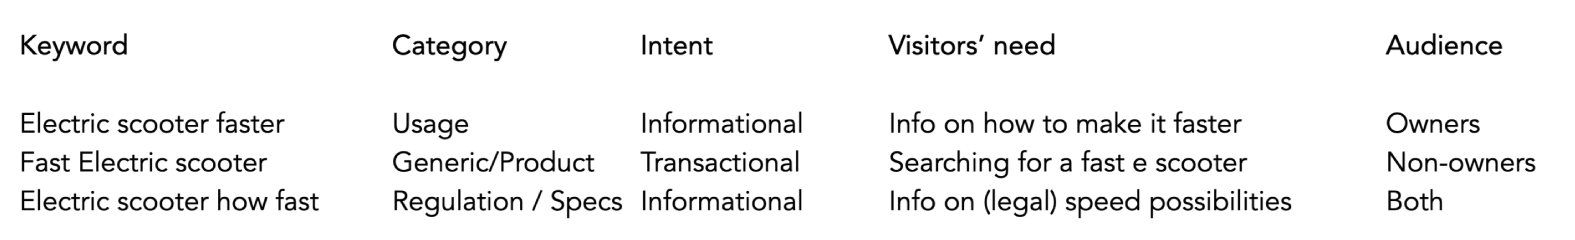 keyword data in a table with 4 variables - SEJ